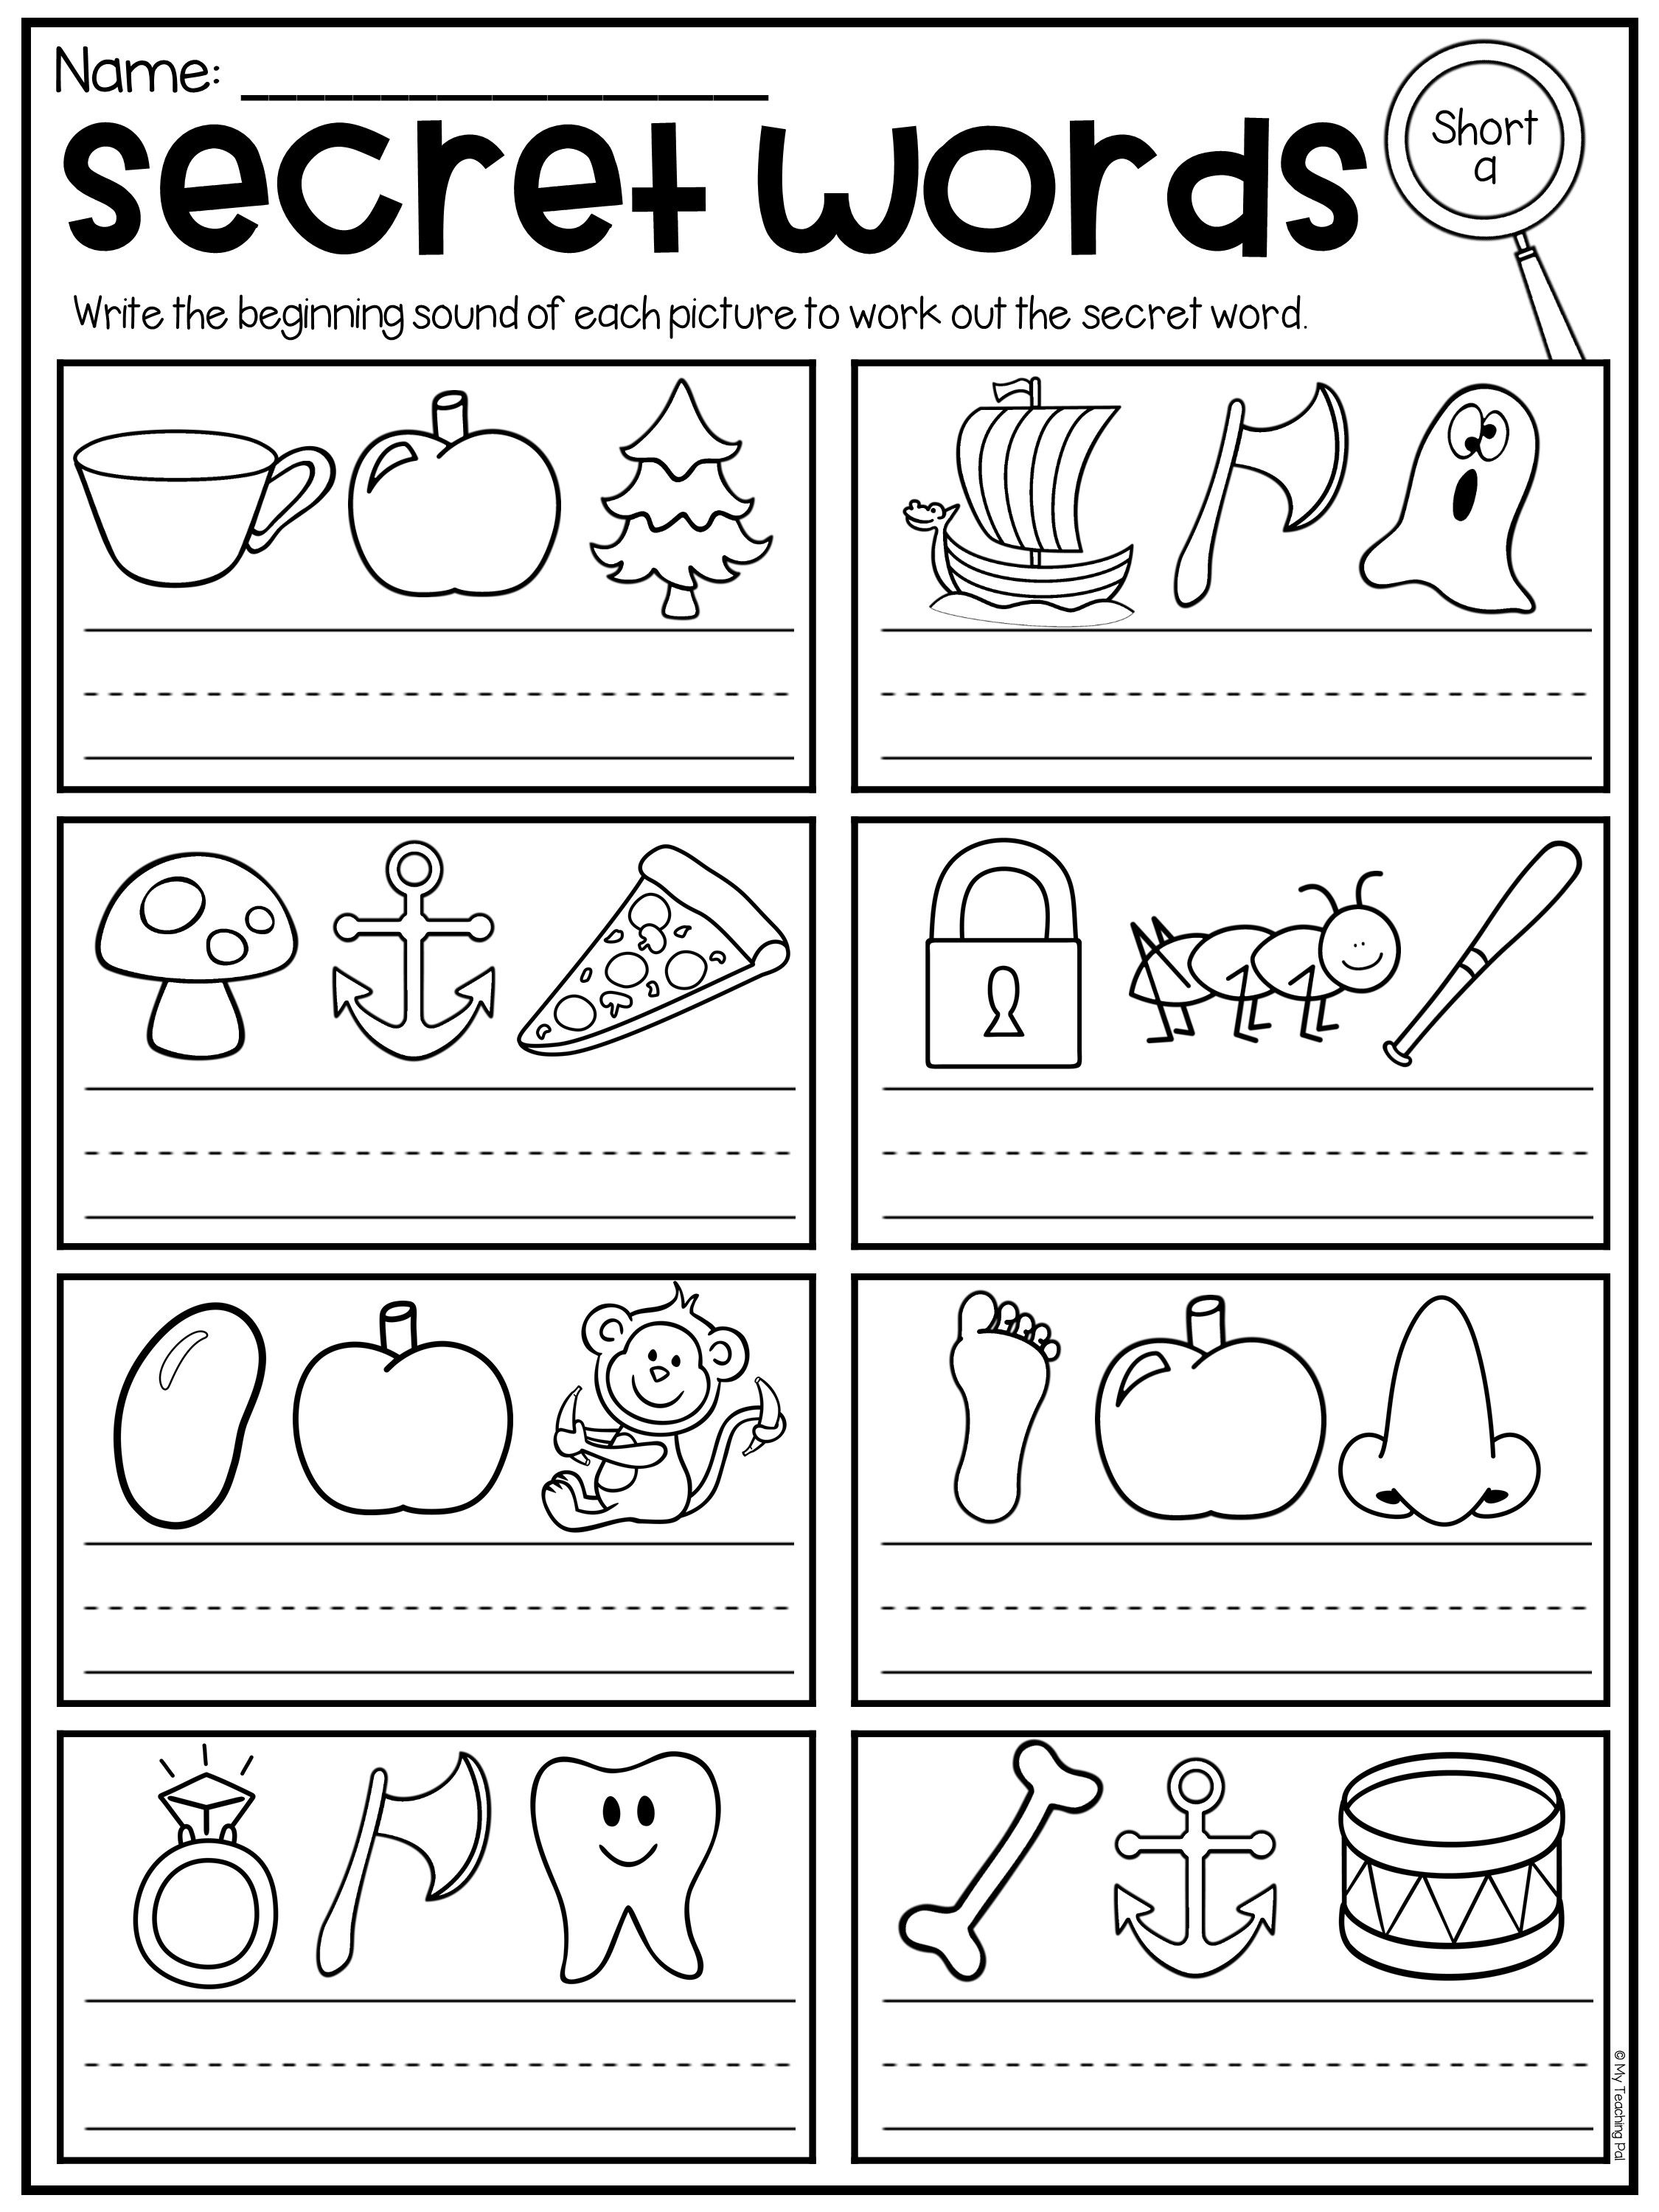 Secret Words Worksheets